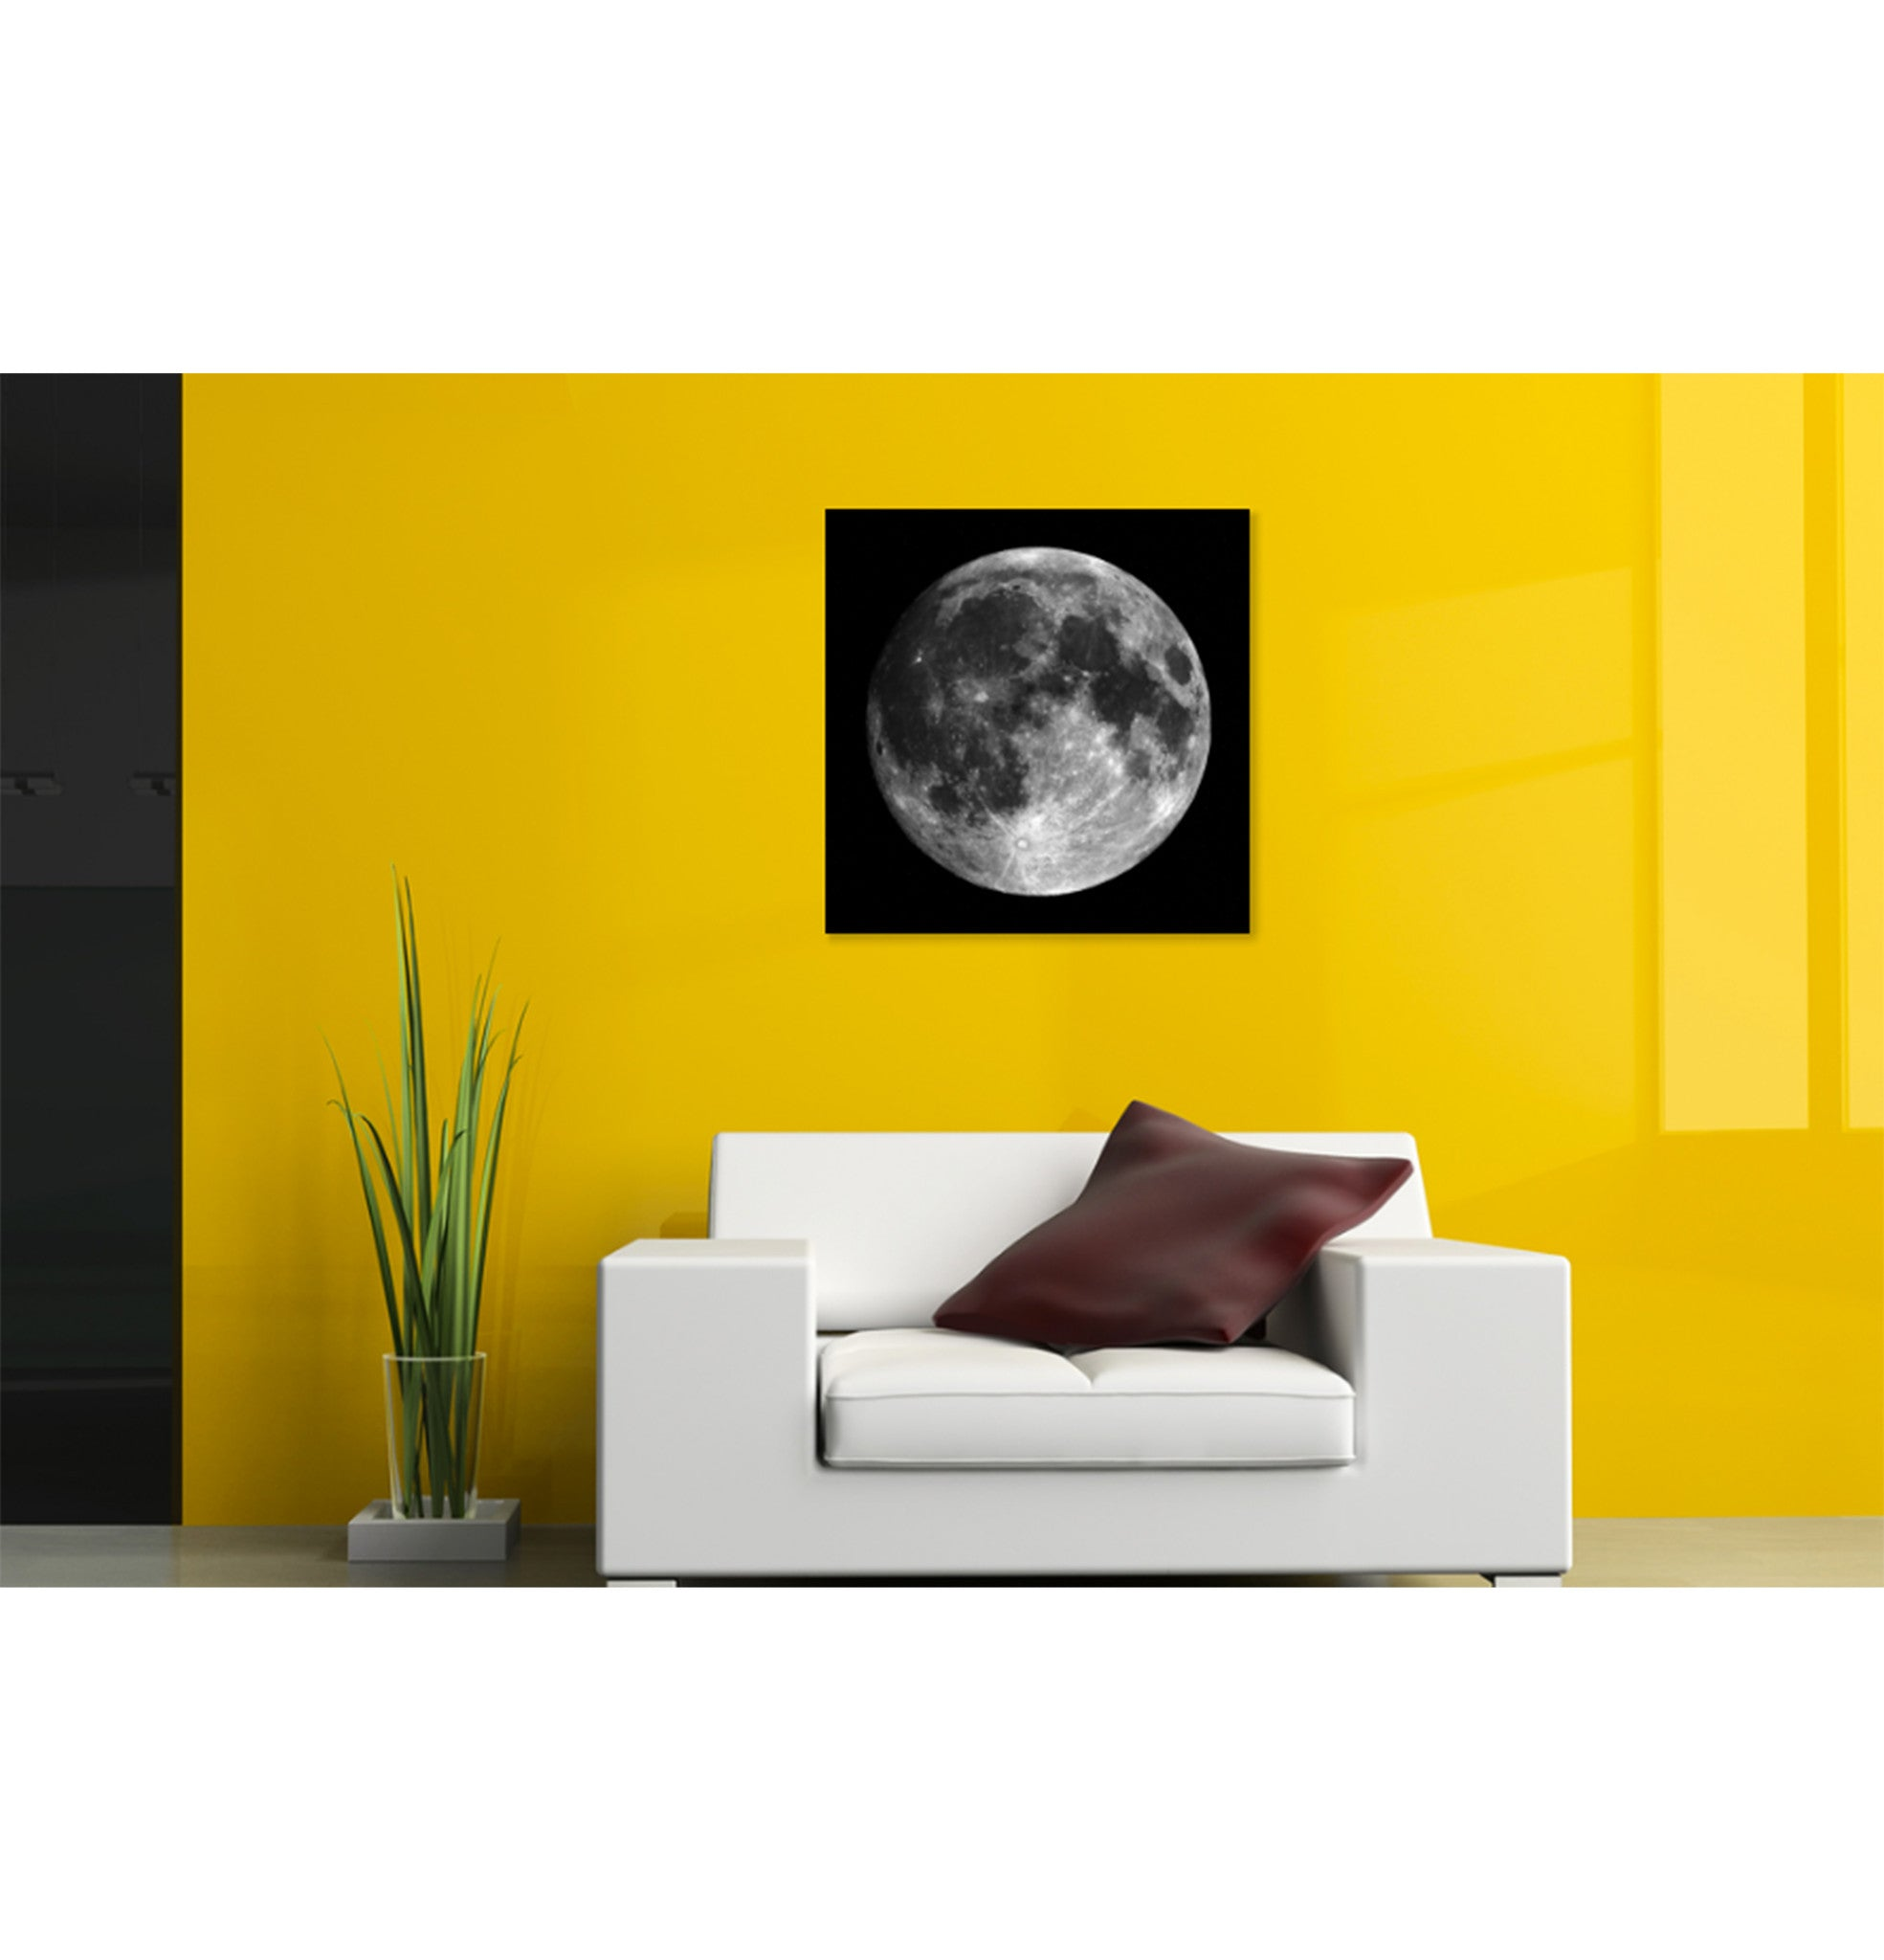 Space Wall Art | Black and White | Large Format Digital Print ...